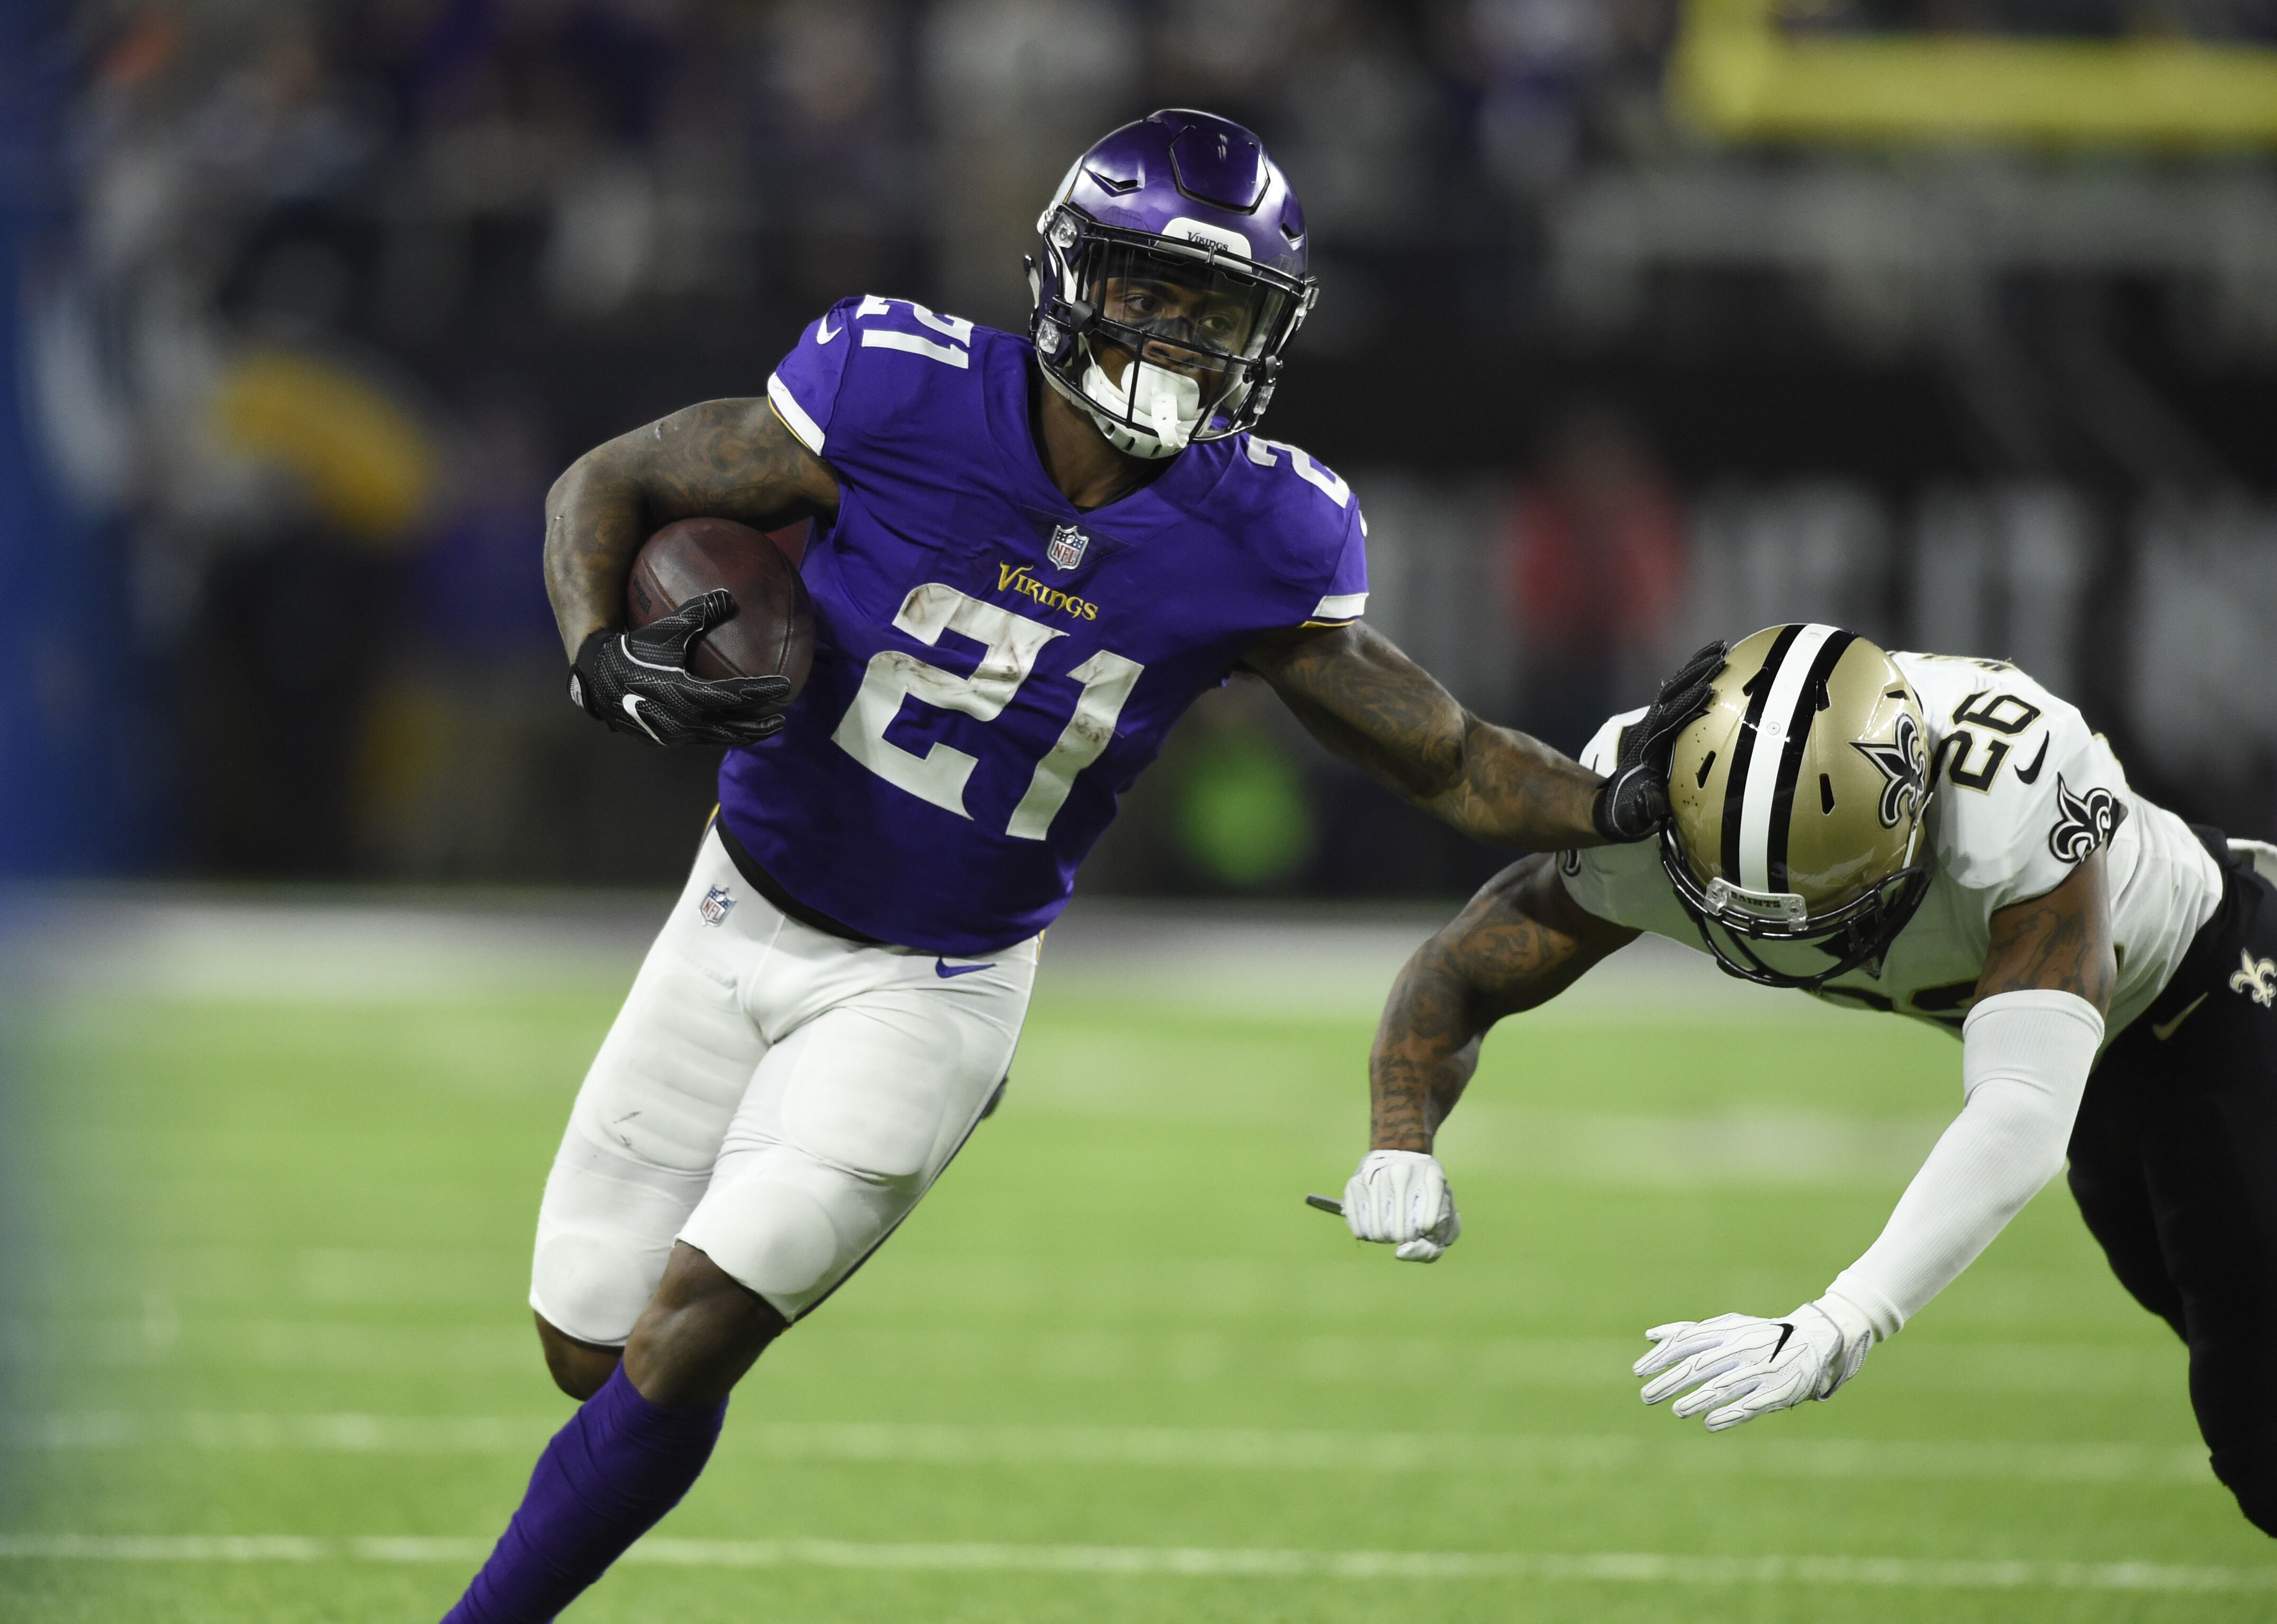 San Francisco 49ers: Jerick McKinnon continues to get lost in the shuffle